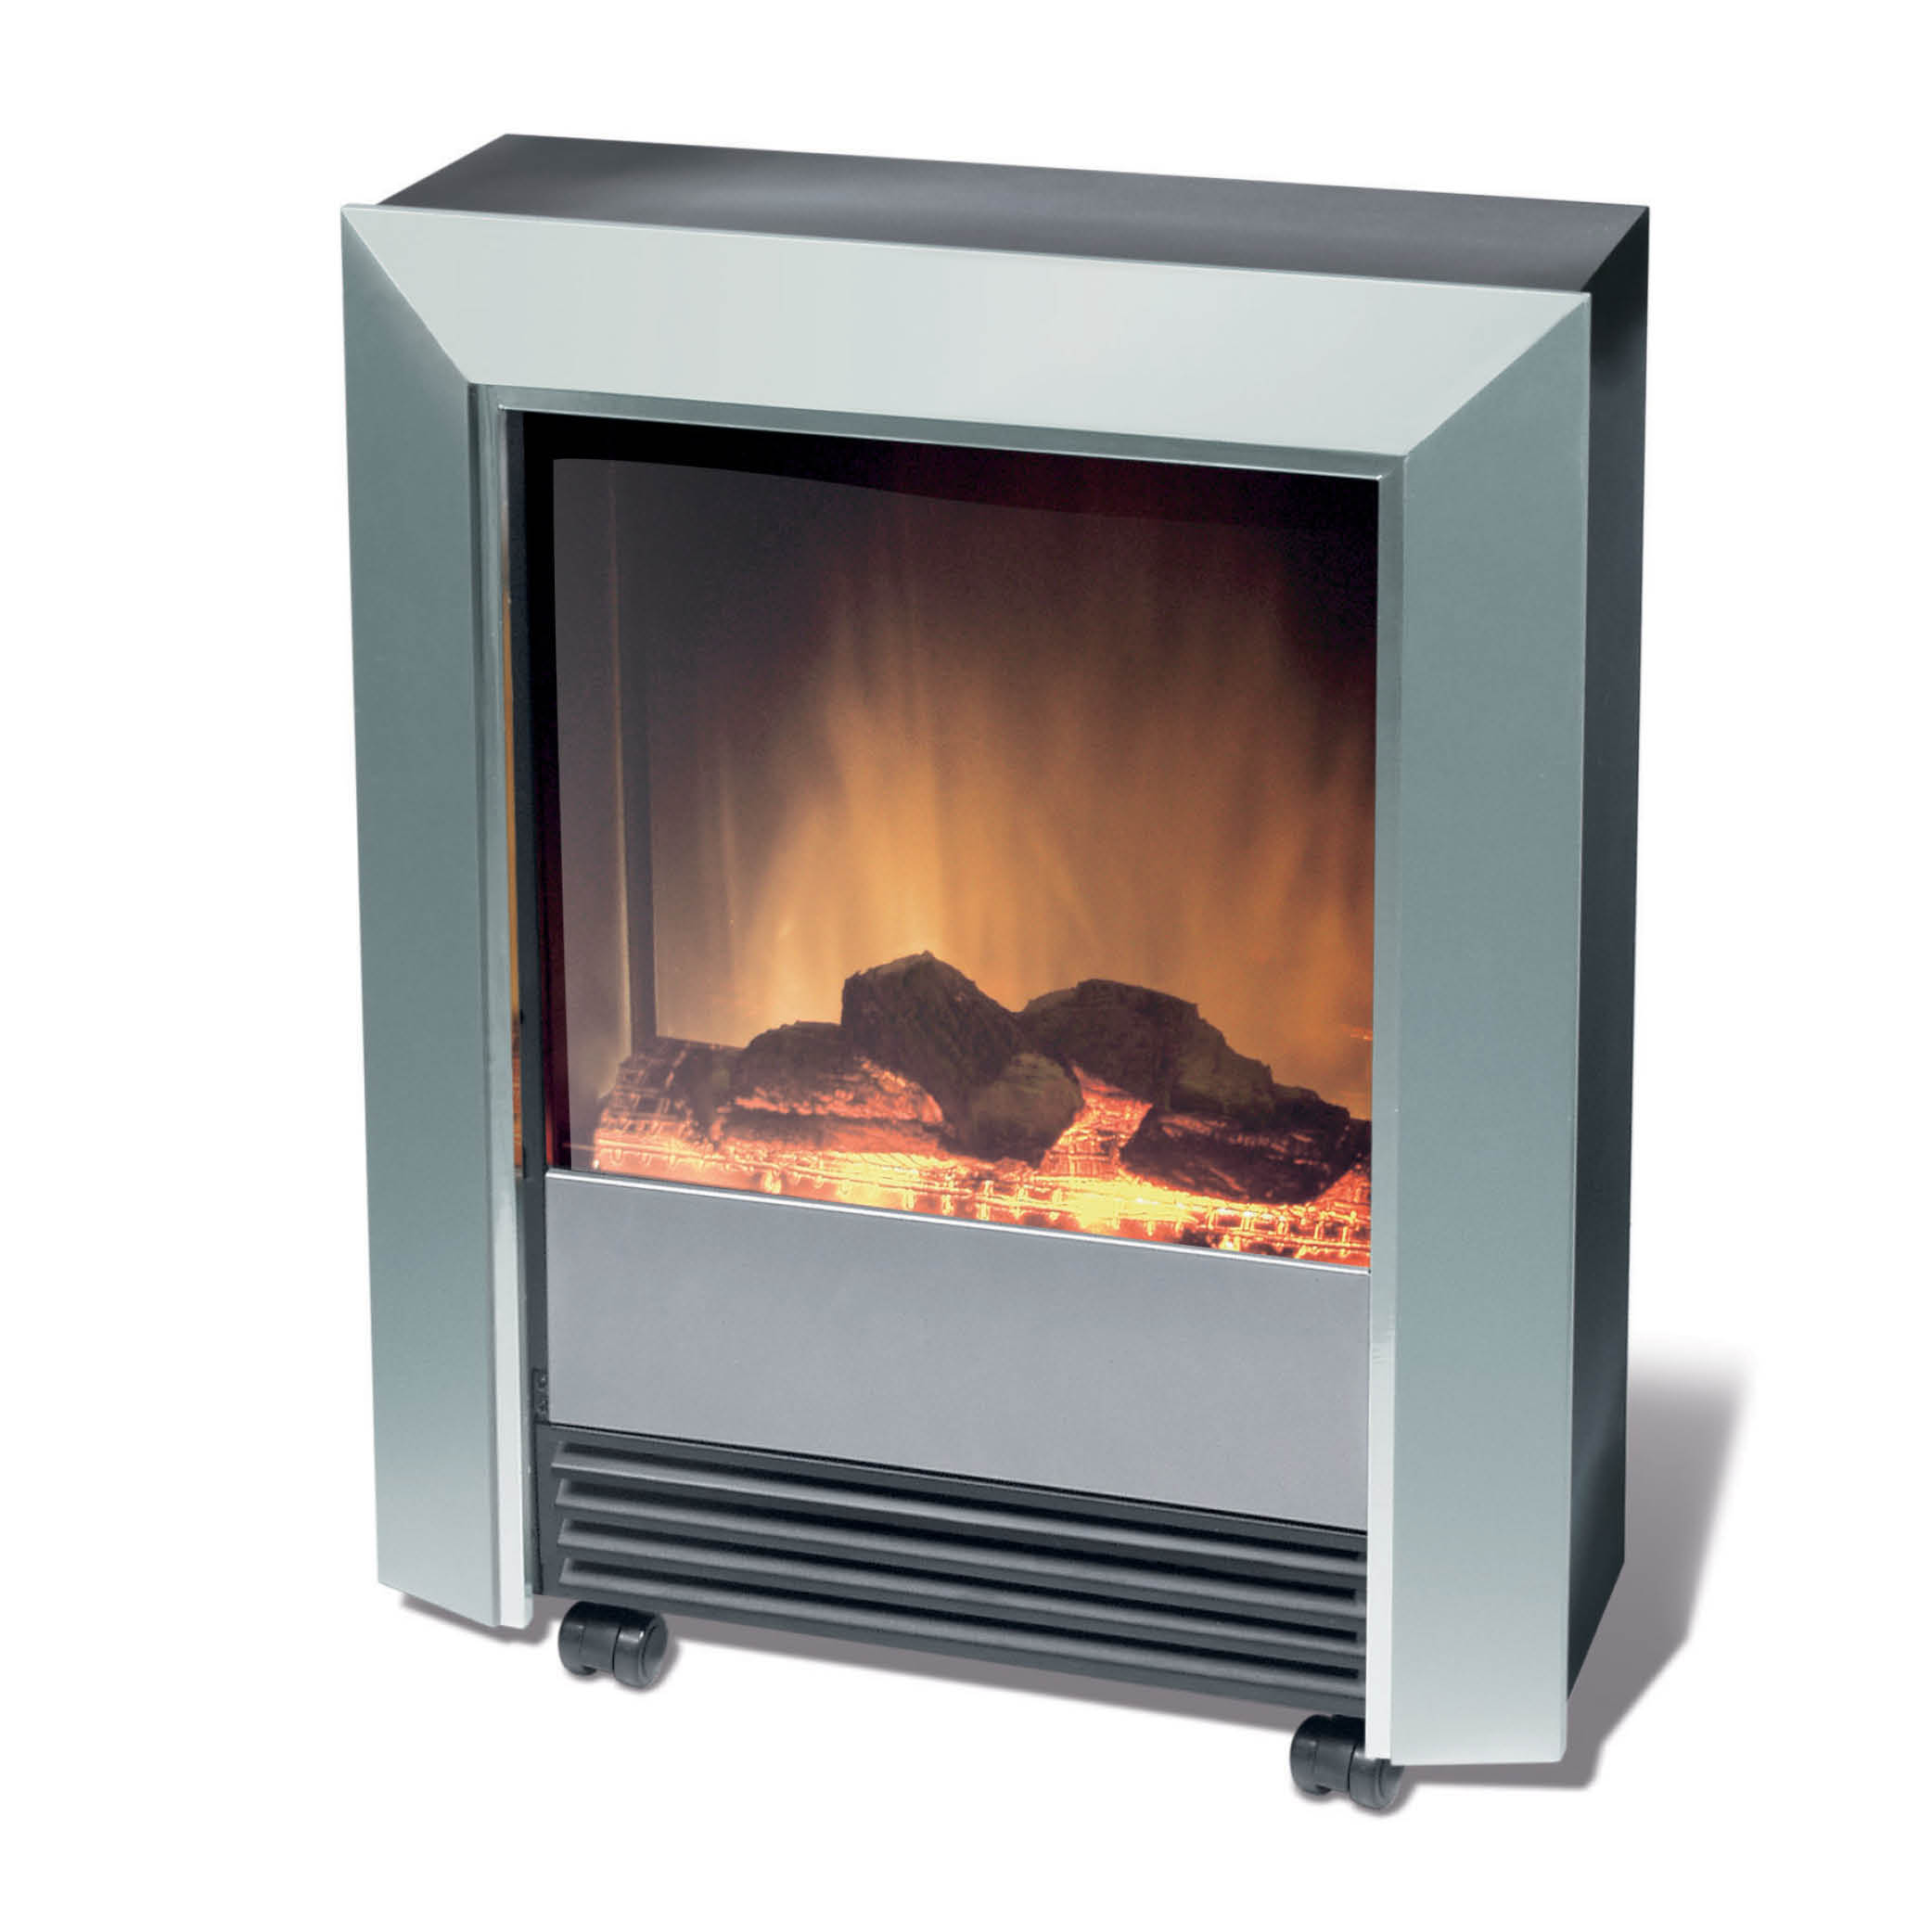 Lee Silver 2kw Portable Electric Fire Model Lee Silver